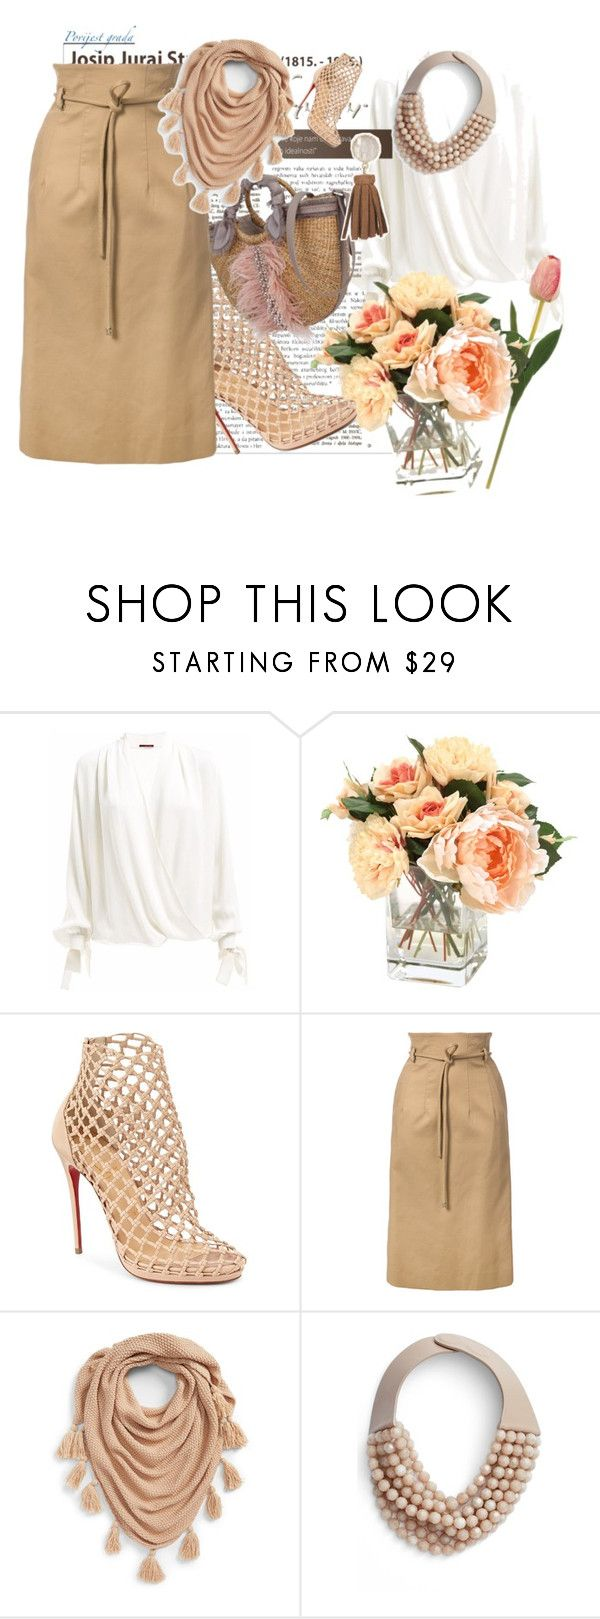 """Untitled #262"" by santyfebrina-nasution ❤ liked on Polyvore featuring Christian Louboutin, Oscar de la Renta, NYC Underground, Fairchild Baldwin and Chico's"